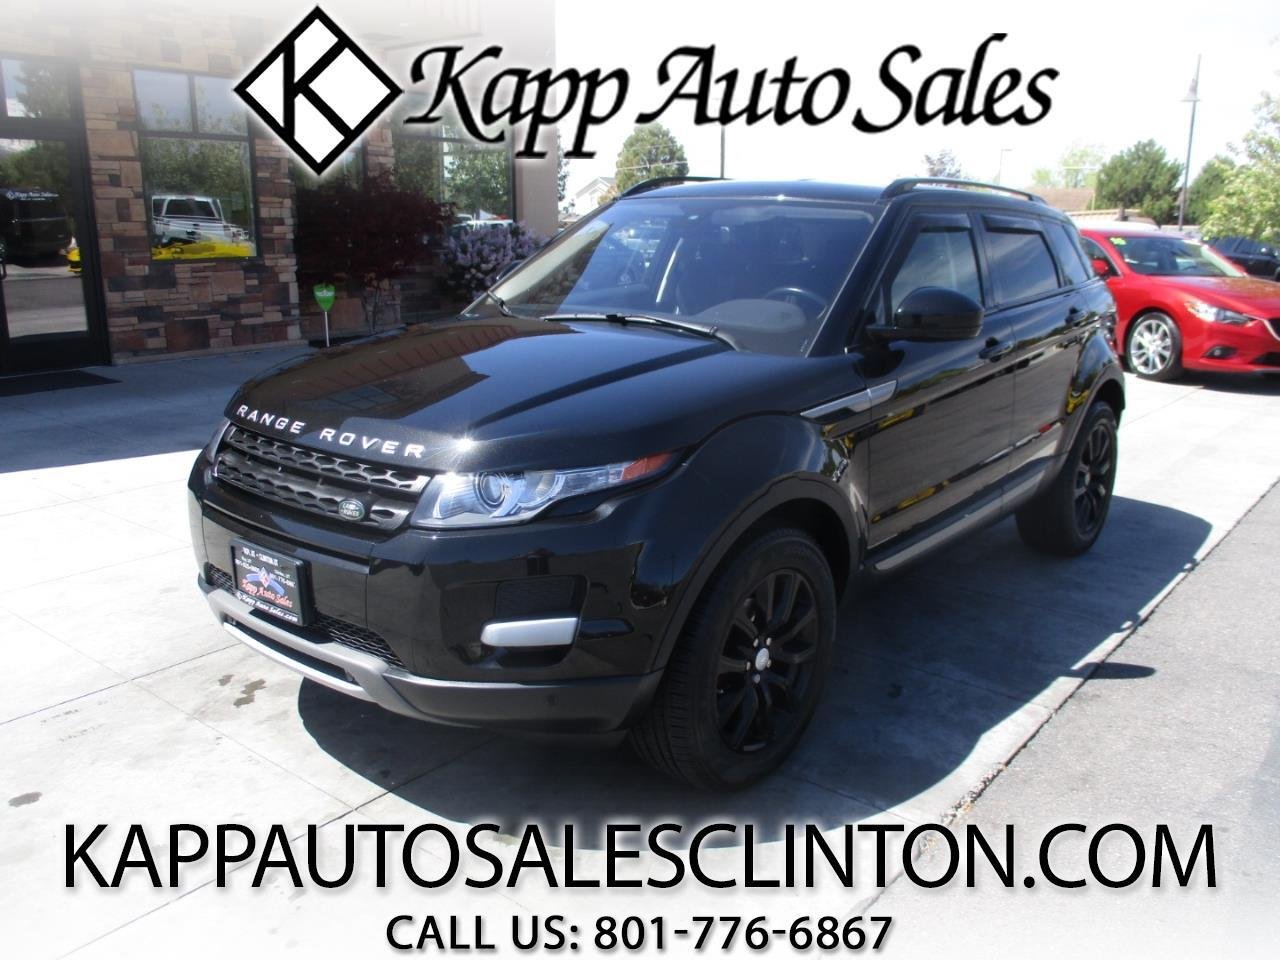 2015 Land Rover Range Rover Evoque 5dr HB Pure